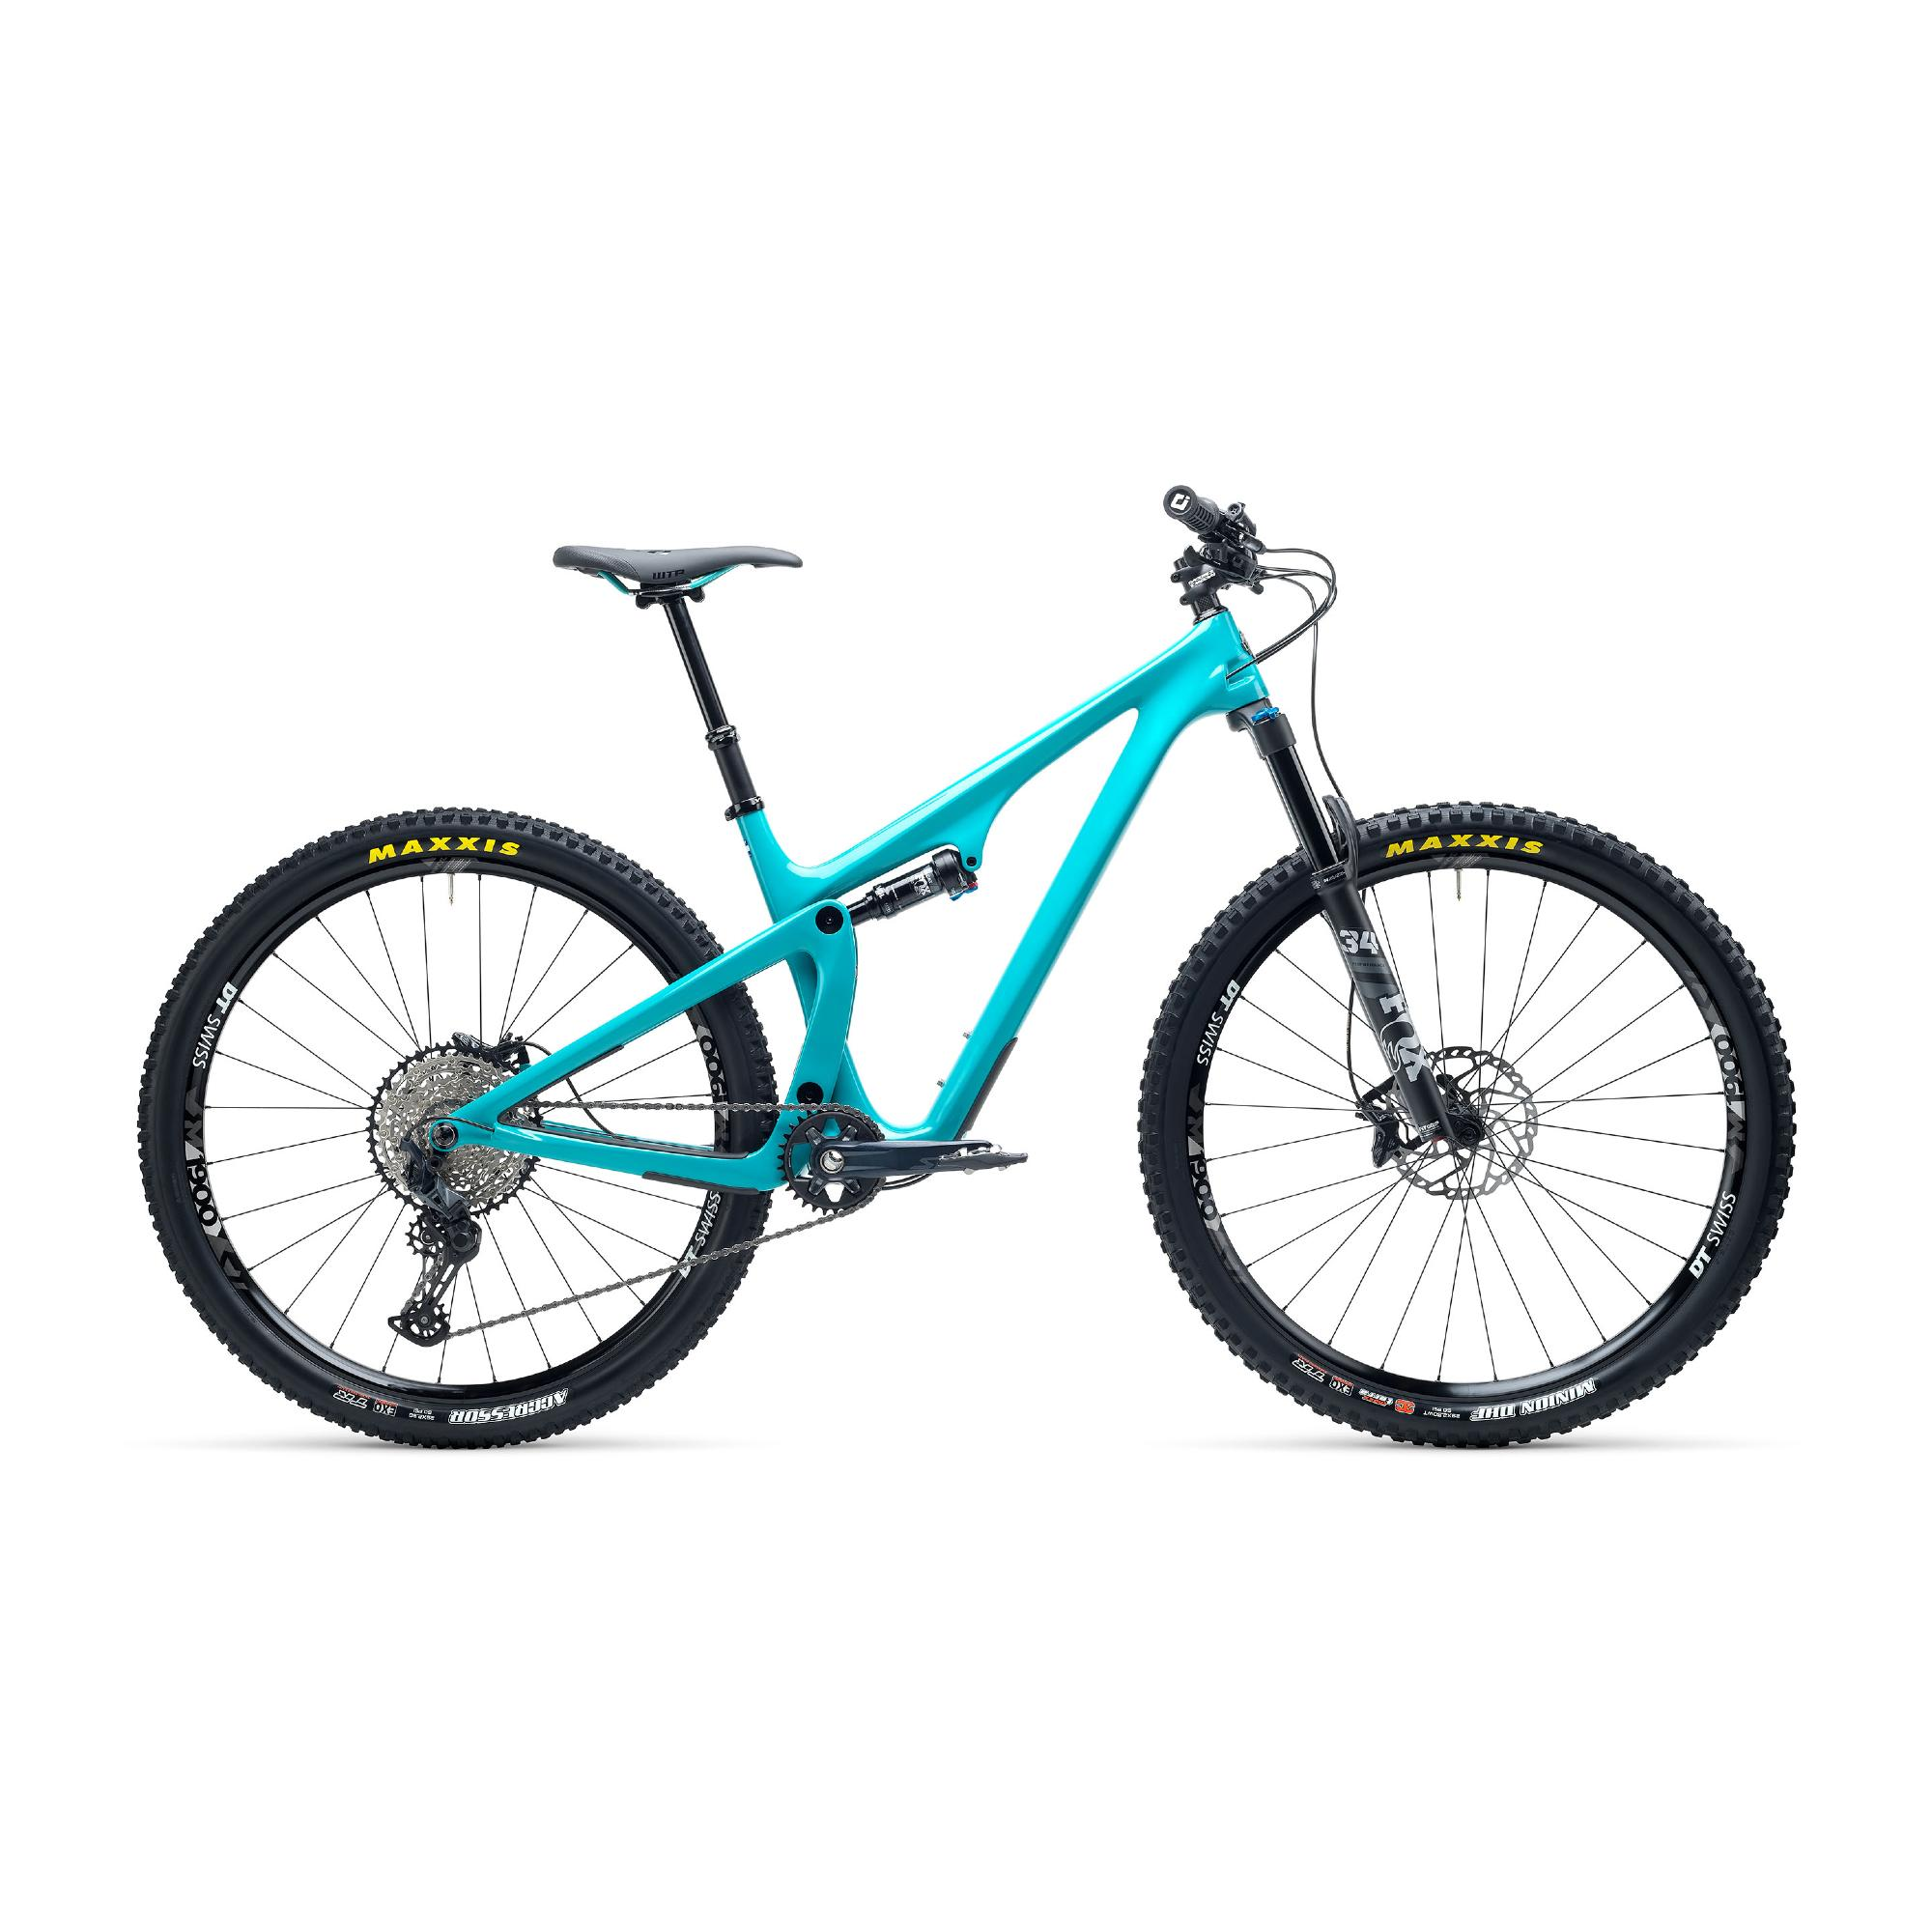 Yeti SB115 C-Series 29er Mountain Bike 2021 Turquoise